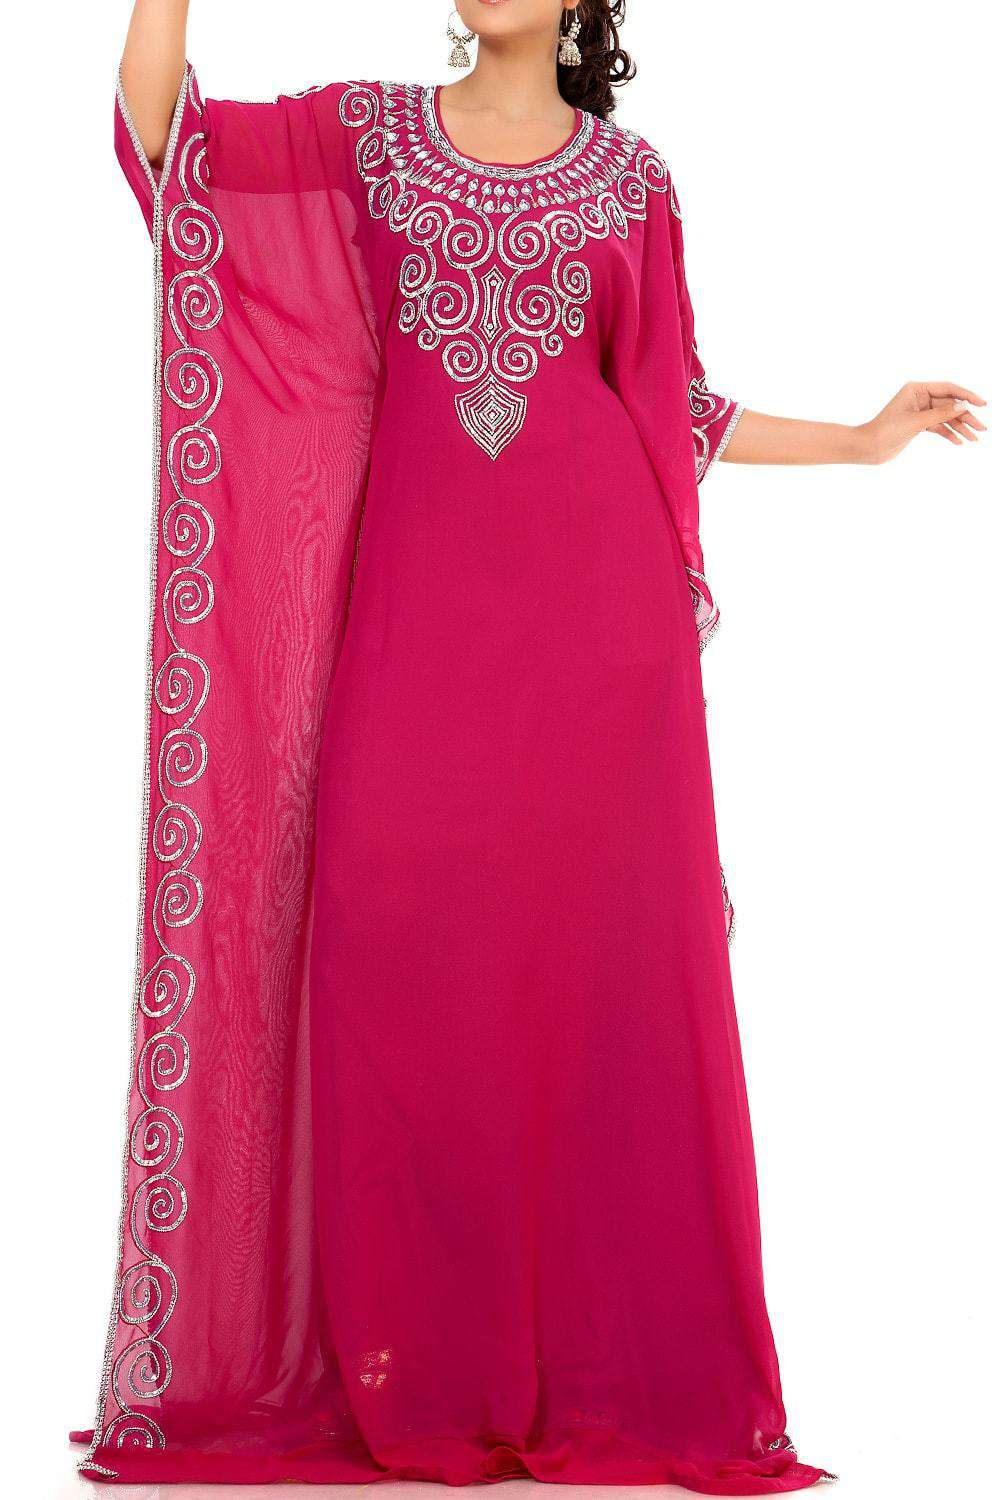 M /& S COLLECTION V-NECK EMBROIDERED KAFTAN IN CRANBERRY OR PINK MIX